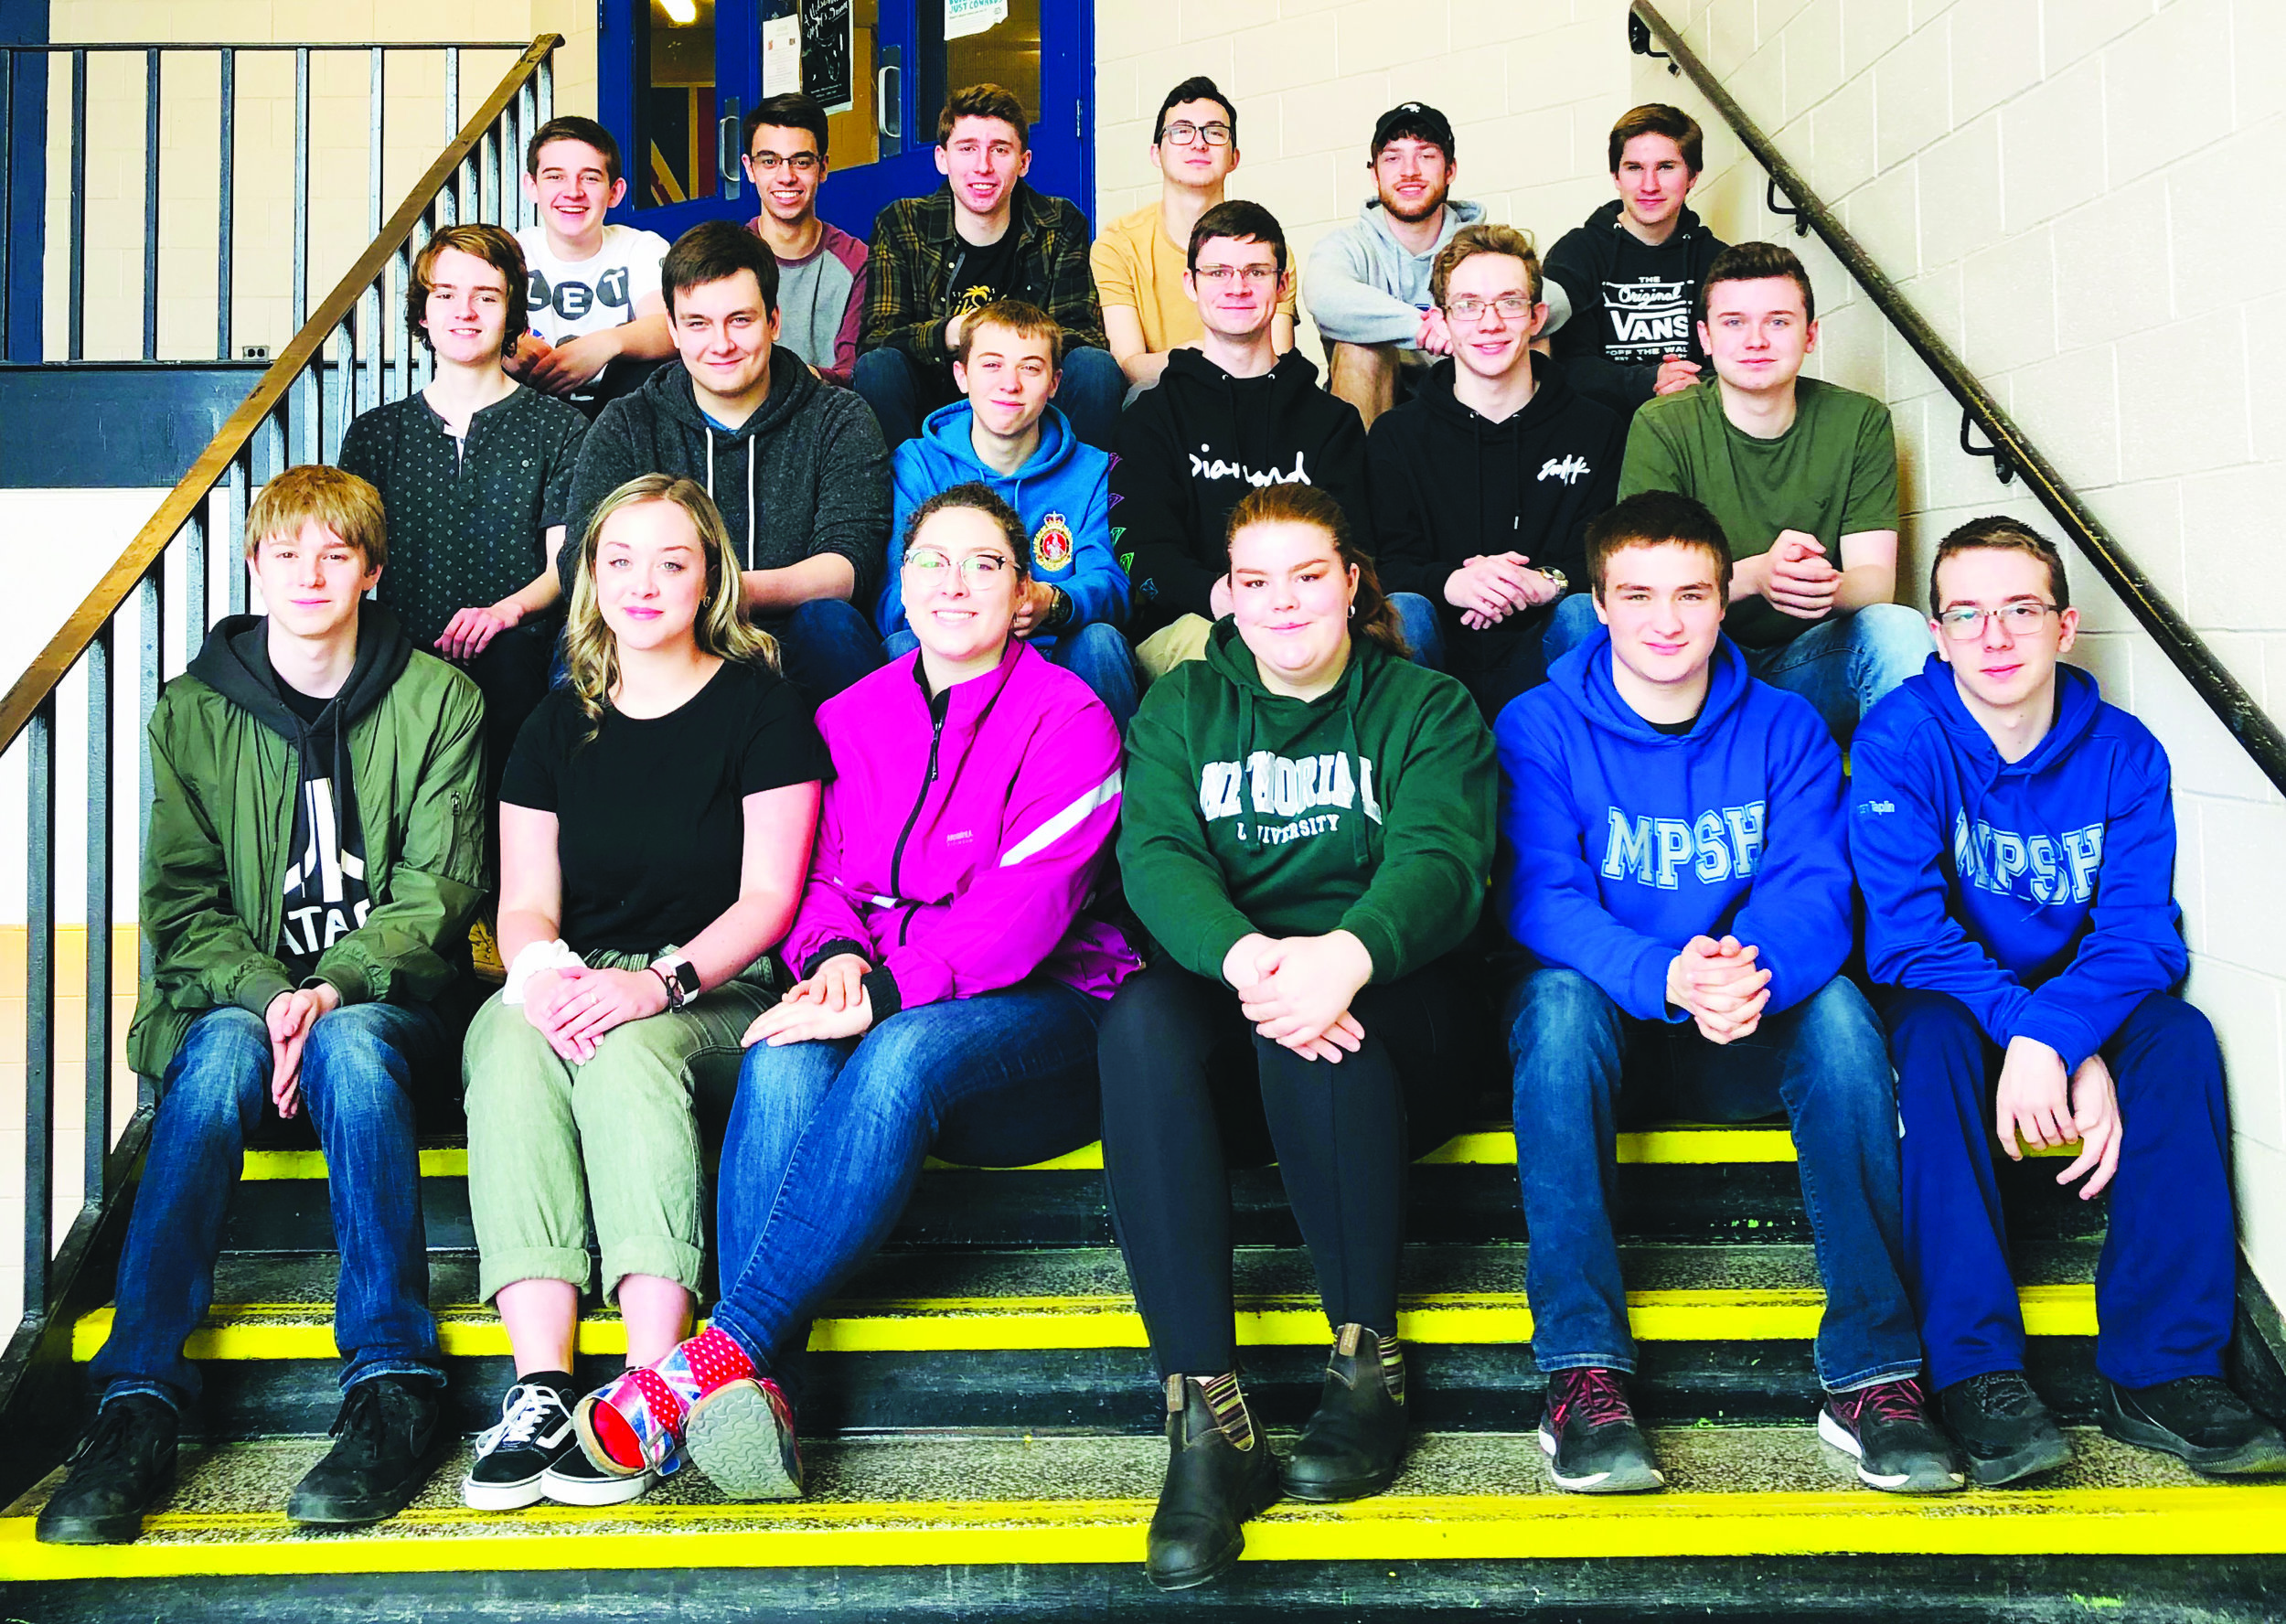 Members of the Mount Pearl Senior High robotics club.  In the back row, from left to right, is Ian Carroll, Tim Squires, Josh Deering, Truman Osmond, Jeremy Stratton, and Josh Coady. In the middle row, from left to right, is Timothy Bouzane, Marcus Sinnott, Cameron Kinsella, Steve Lamkin and Shane Williams. In the front row, from left to right is Jacob Purchase, Brianna Hillier, Megan King, Allison Manning, Kalum Dinn, and Noah Taplin.